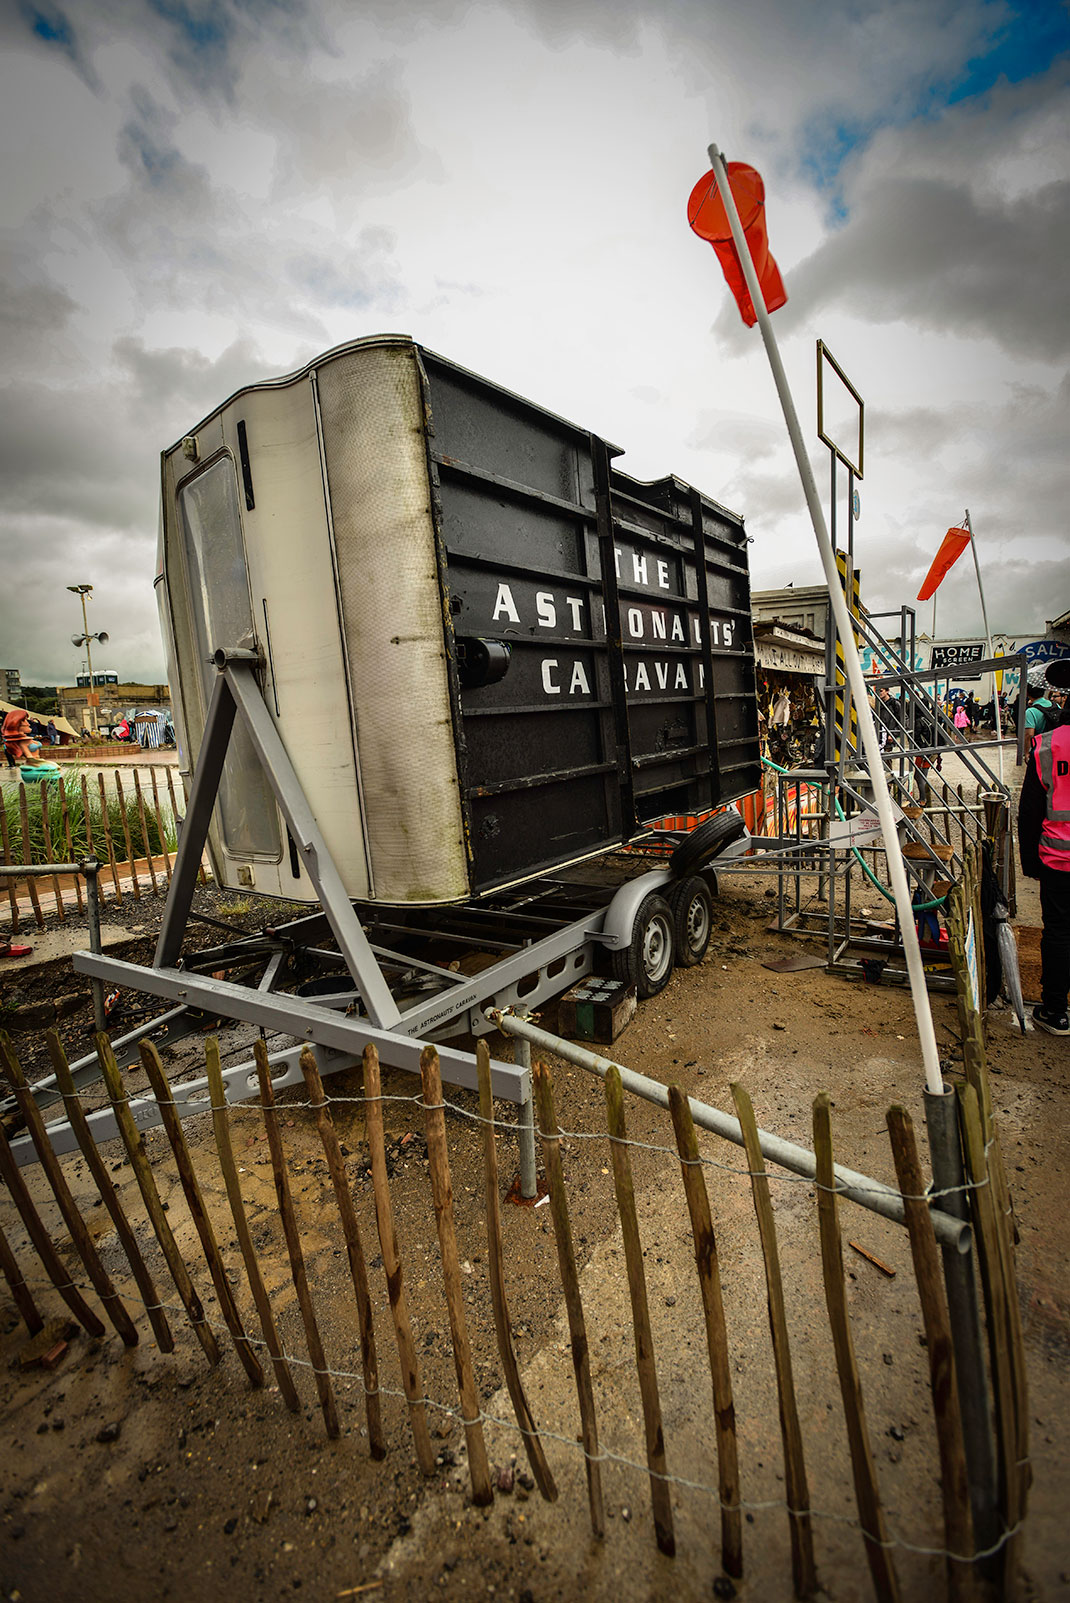 Dismaland- A Disneyland Like Park That Mocks The Decadence Of Our Society-6